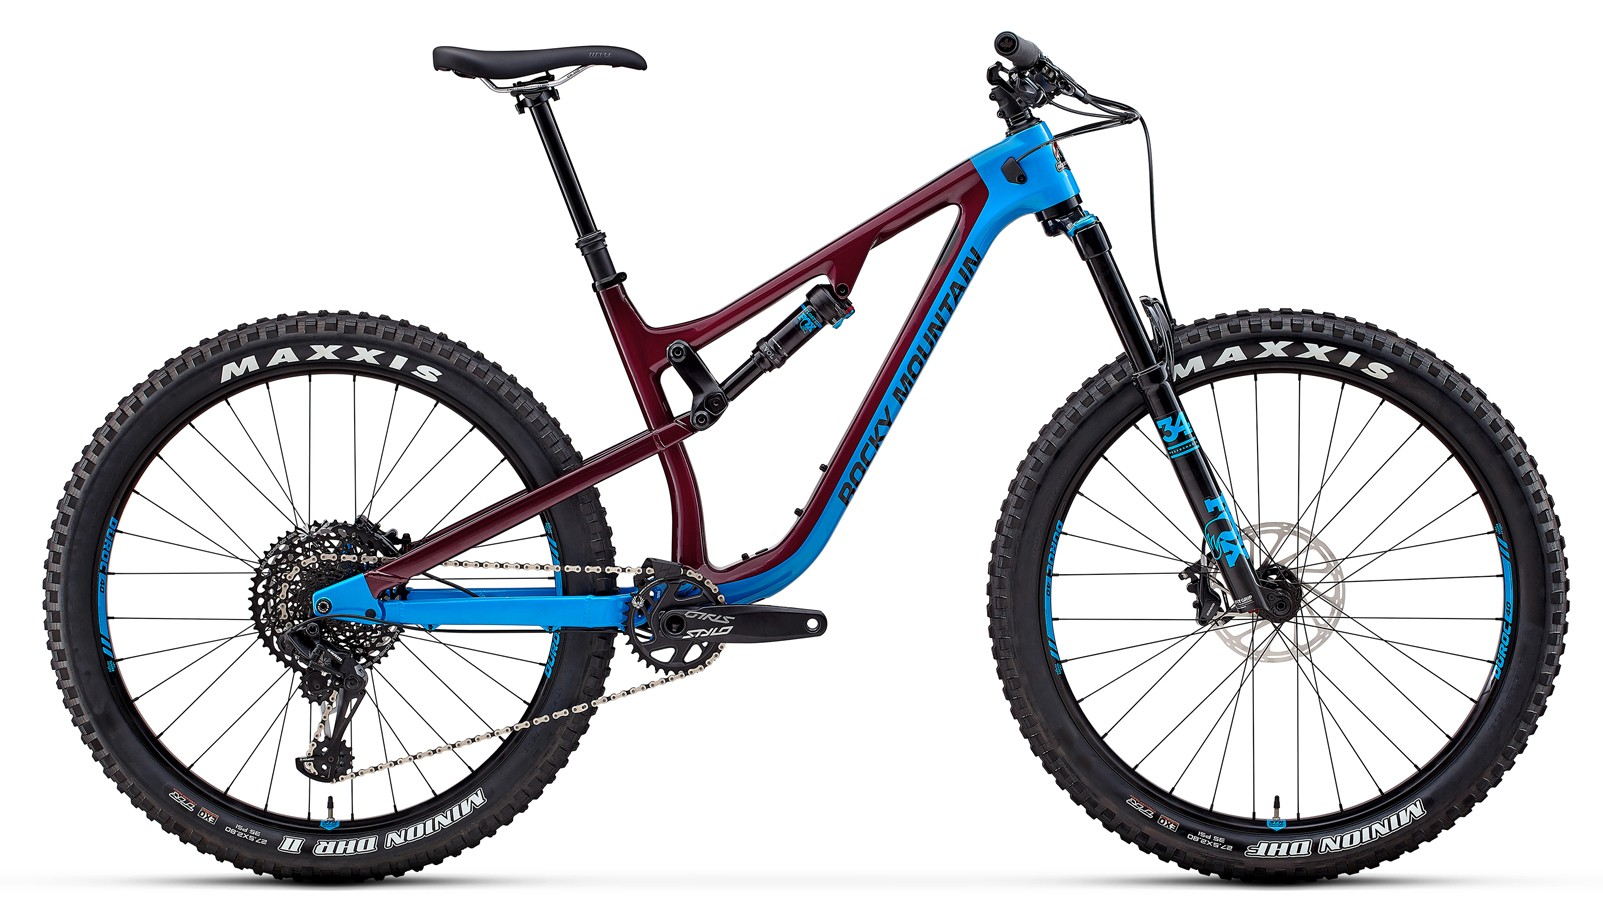 The Pipeline Carbon 50 has a carbon main frame with alloy rear stays